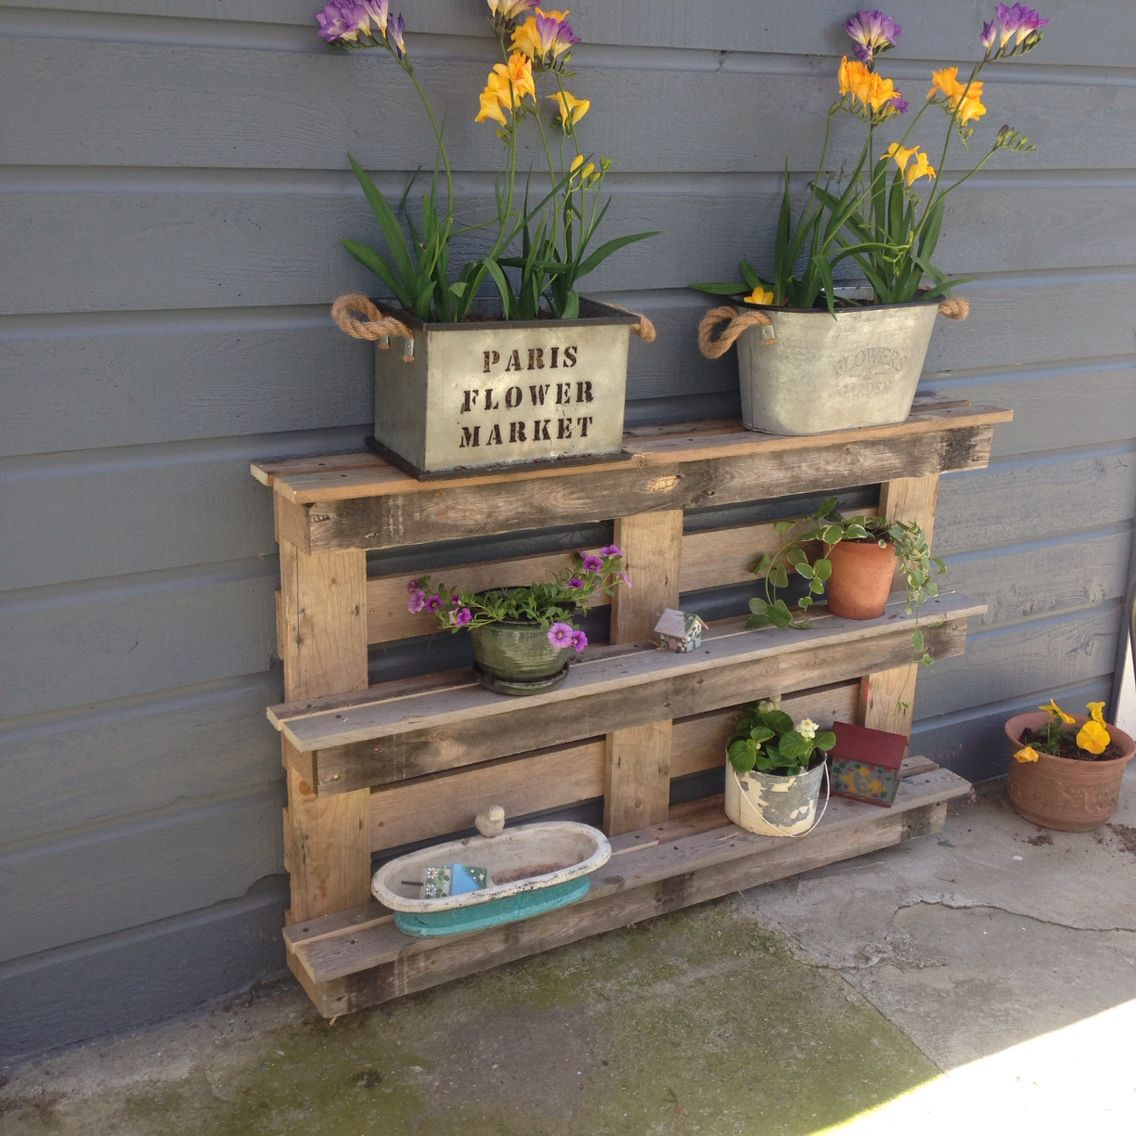 Hubby Built This Cool Pallet Shelf For Our Patio! Love It